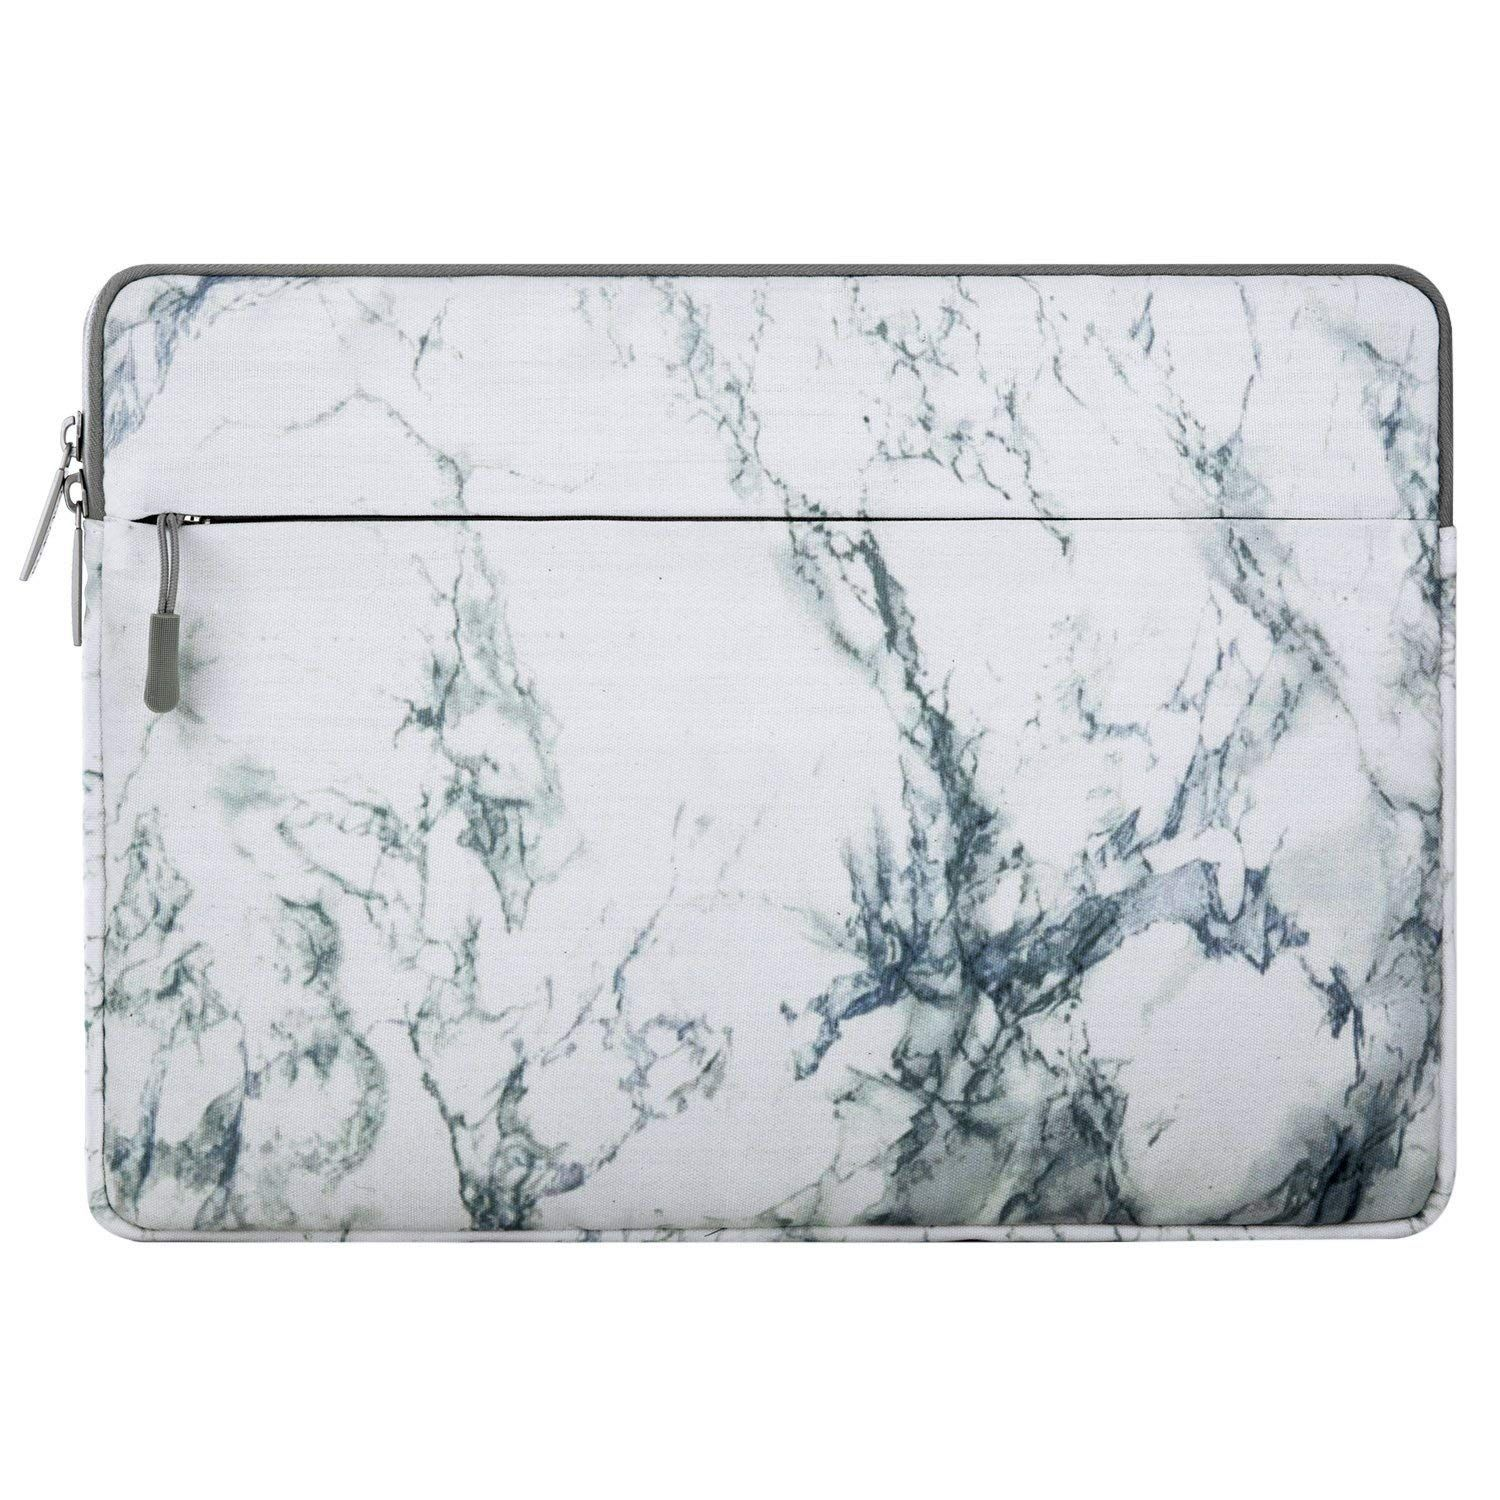 Mosiso Canvas Fabric Laptop Sleeve Case Bag Cover for 13